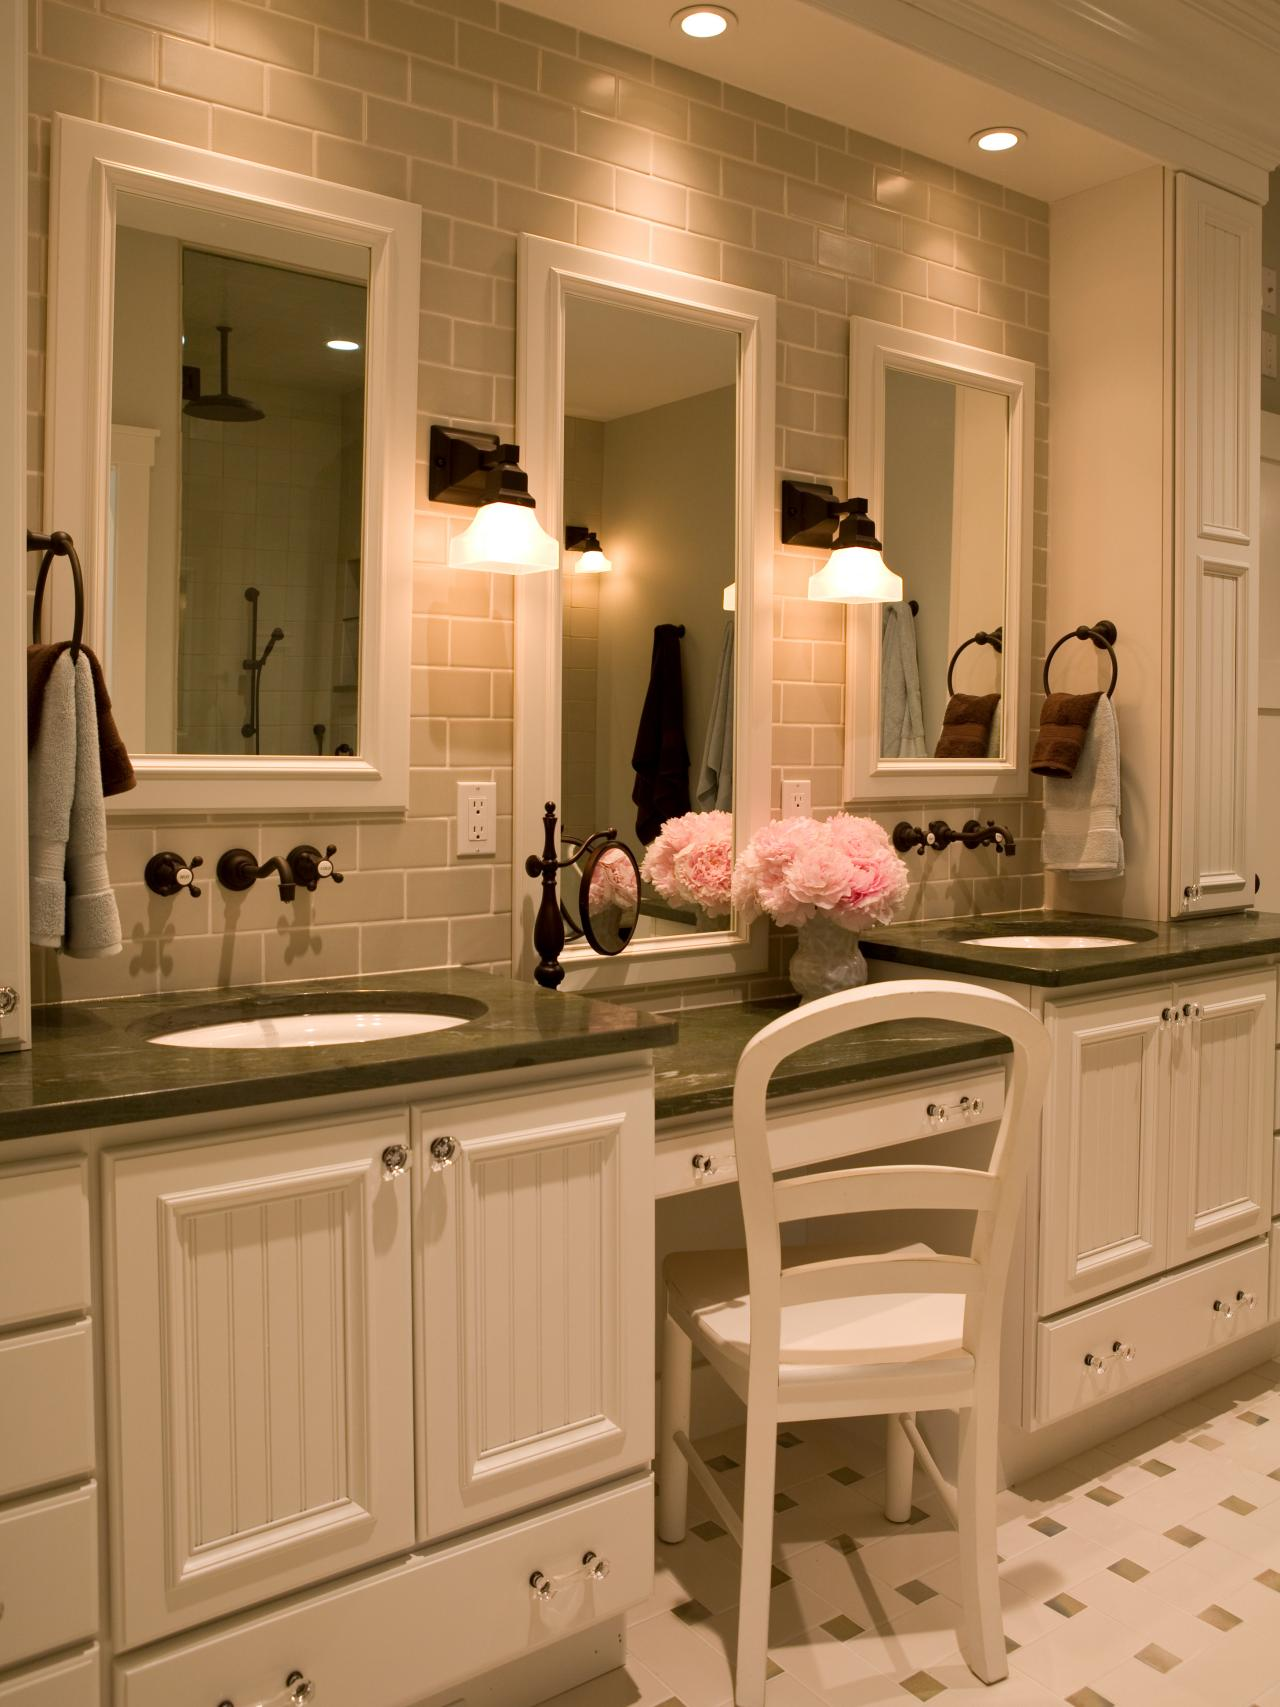 Makeup vanity dressing table bathroom ideas designs for Bathroom vanity designs